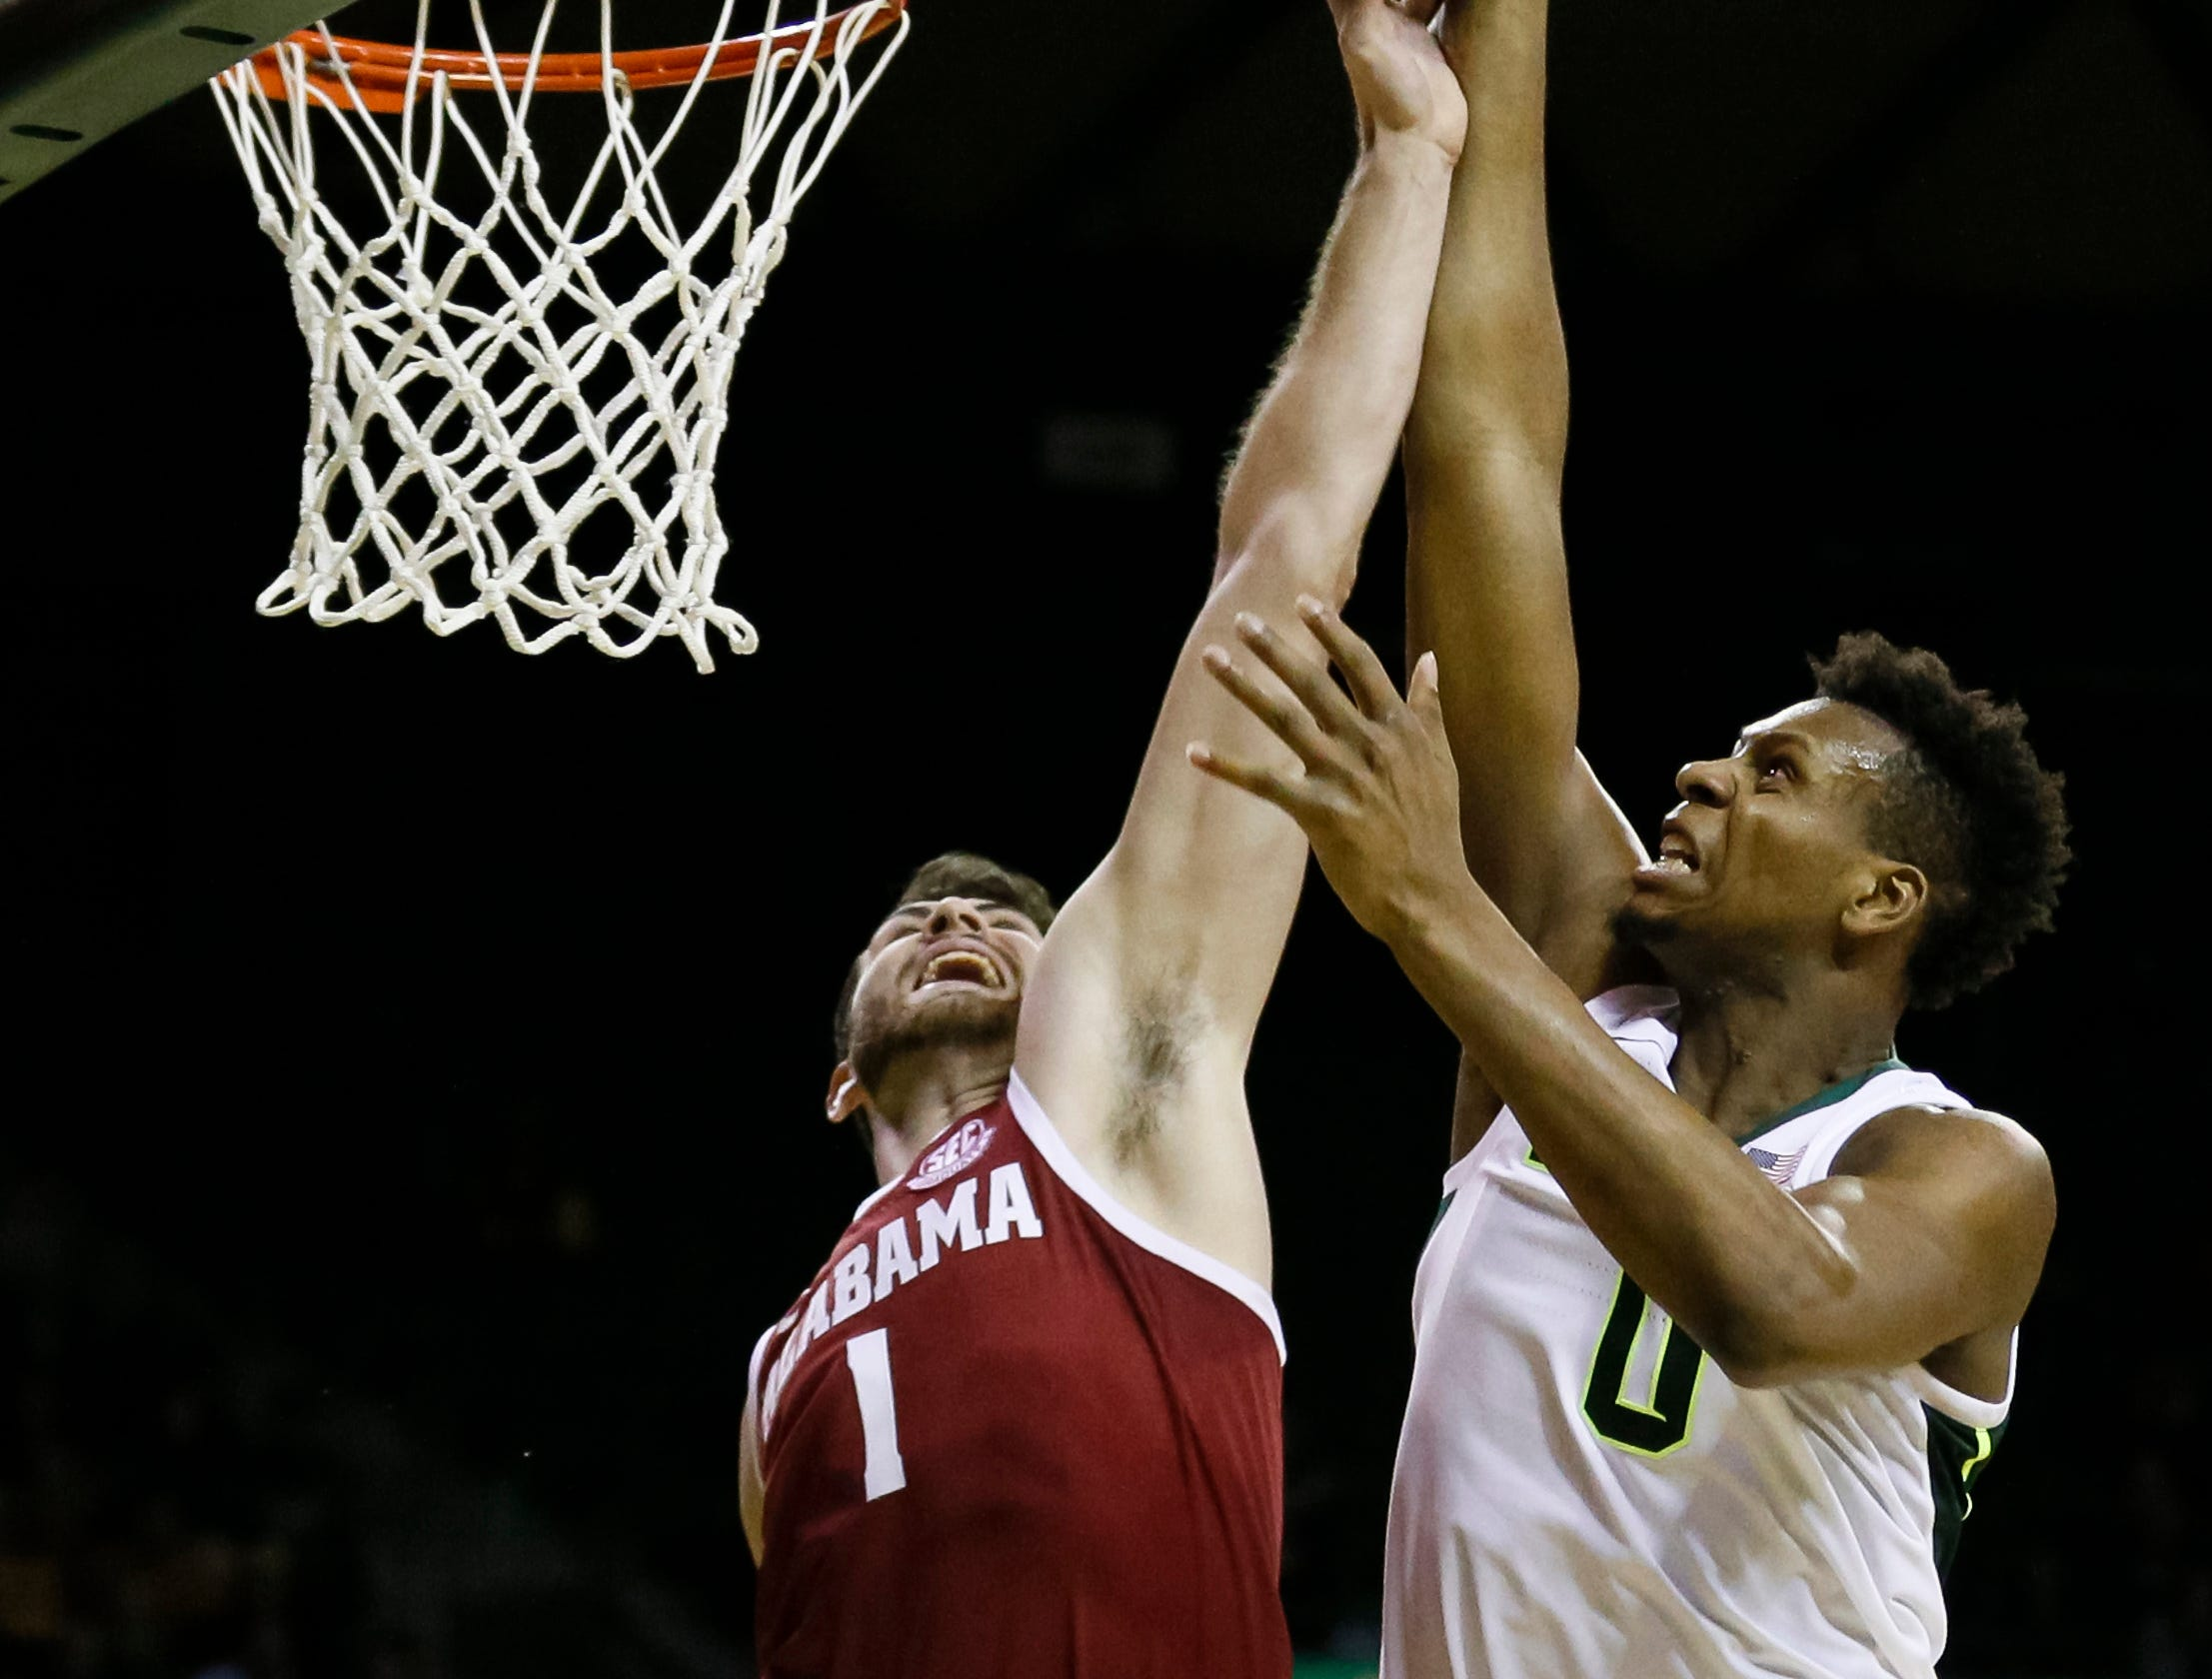 Jan 26, 2019; Waco, TX, USA; Alabama Crimson Tide guard Riley Norris (1) makes the block on Baylor Bears forward Flo Thamba (0) during the second half at Ferrell Center. Mandatory Credit: Ray Carlin-USA TODAY Sports